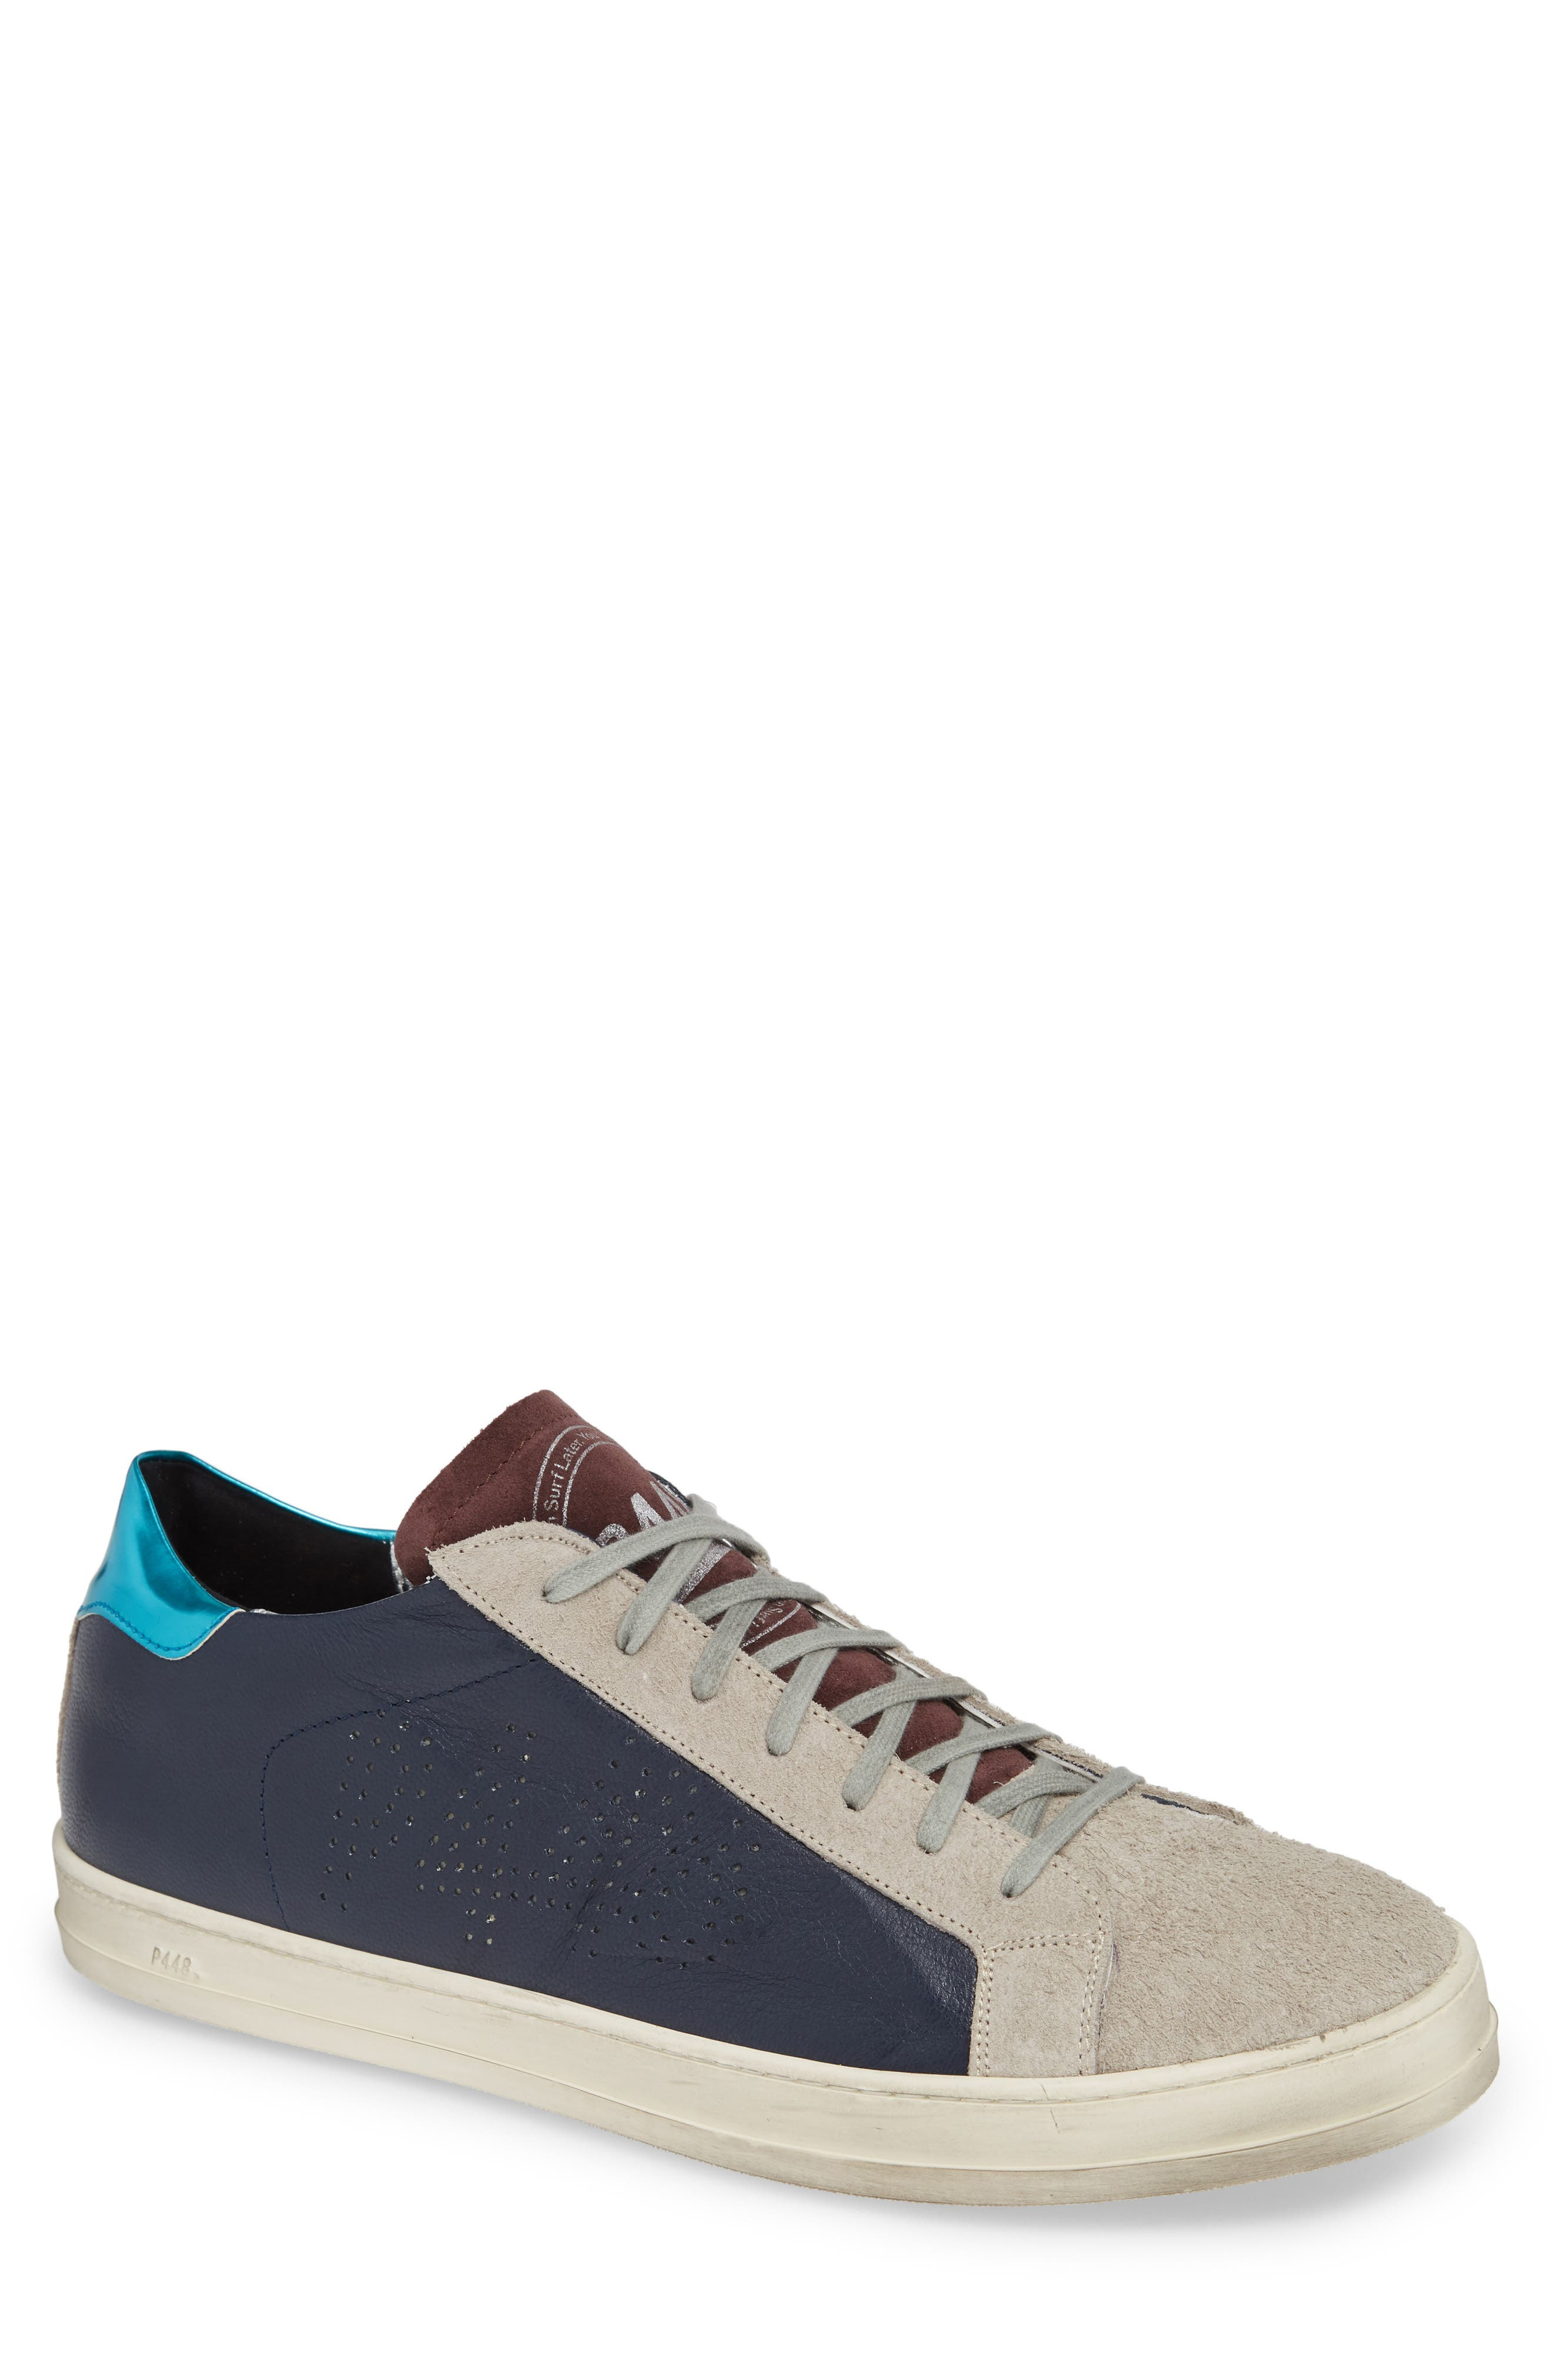 A8 John Sneaker,                         Main,                         color, NAVY